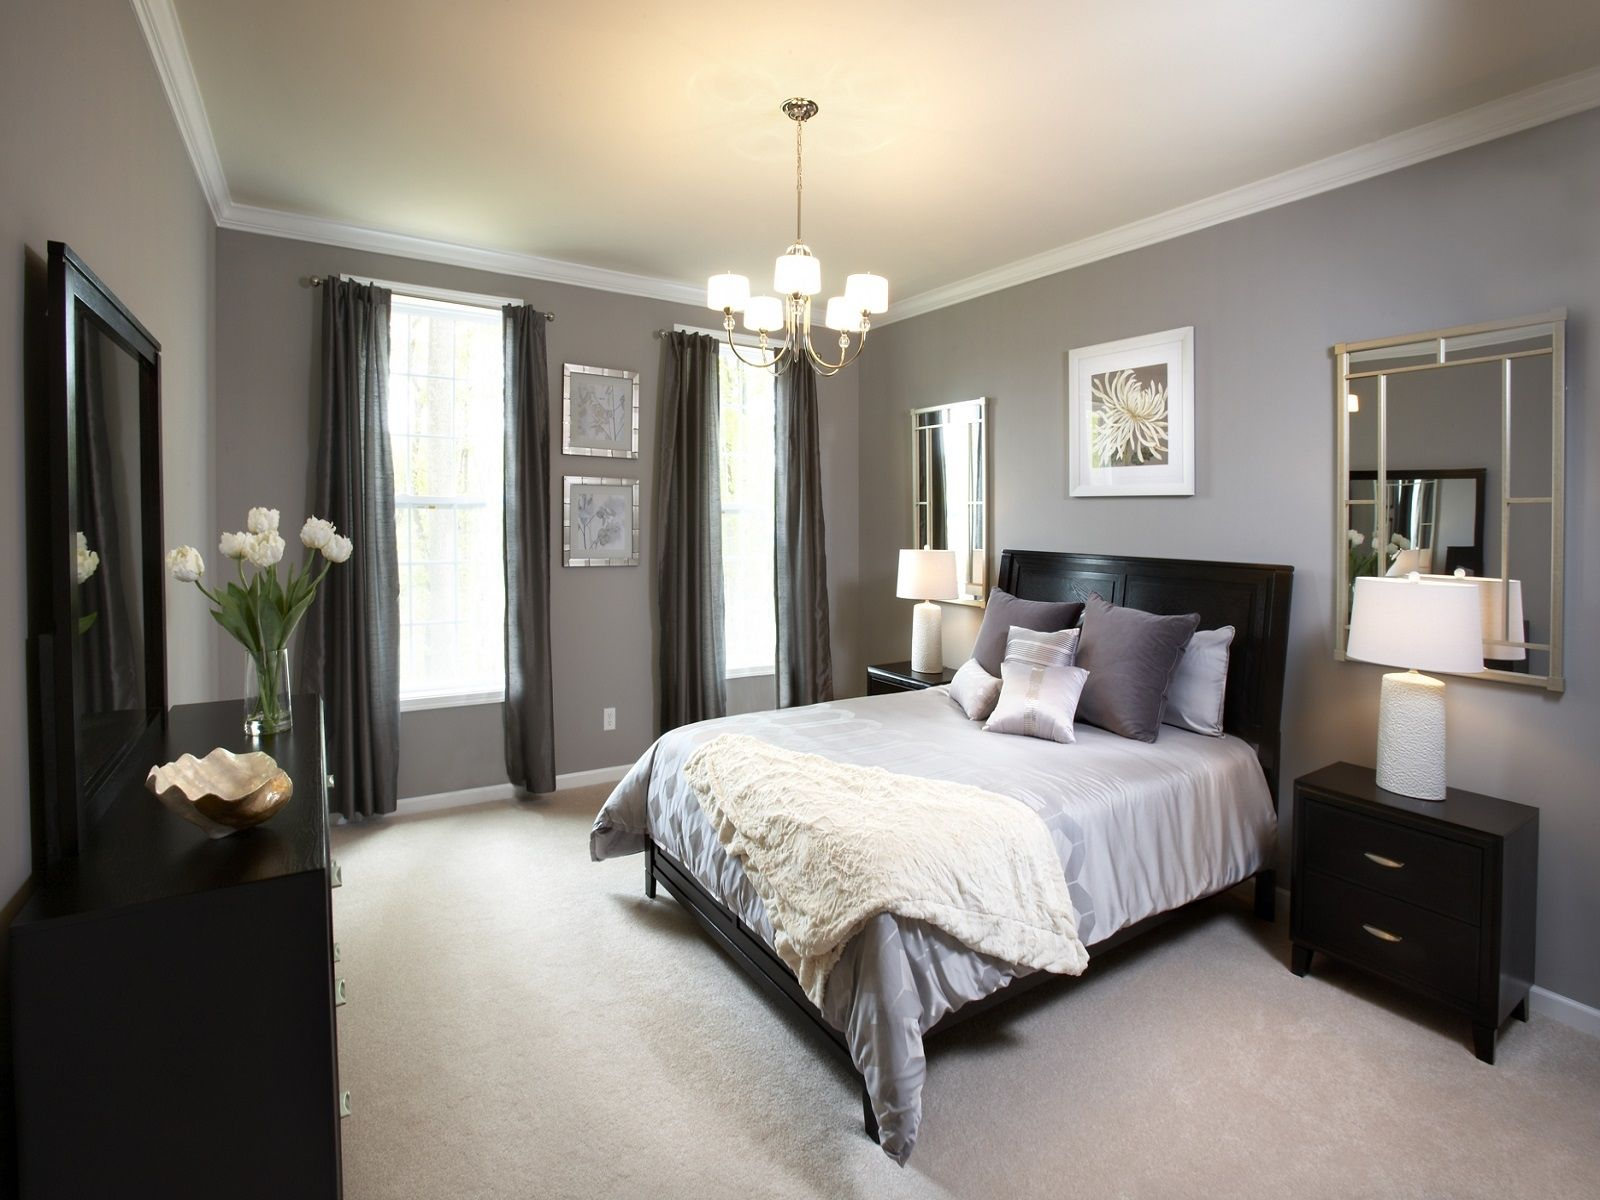 Interior decorating bedroom colors - Brilliant Decorating Bedroom Ideas With Black Bed And Dark Dresser Near Grey Painted Wall